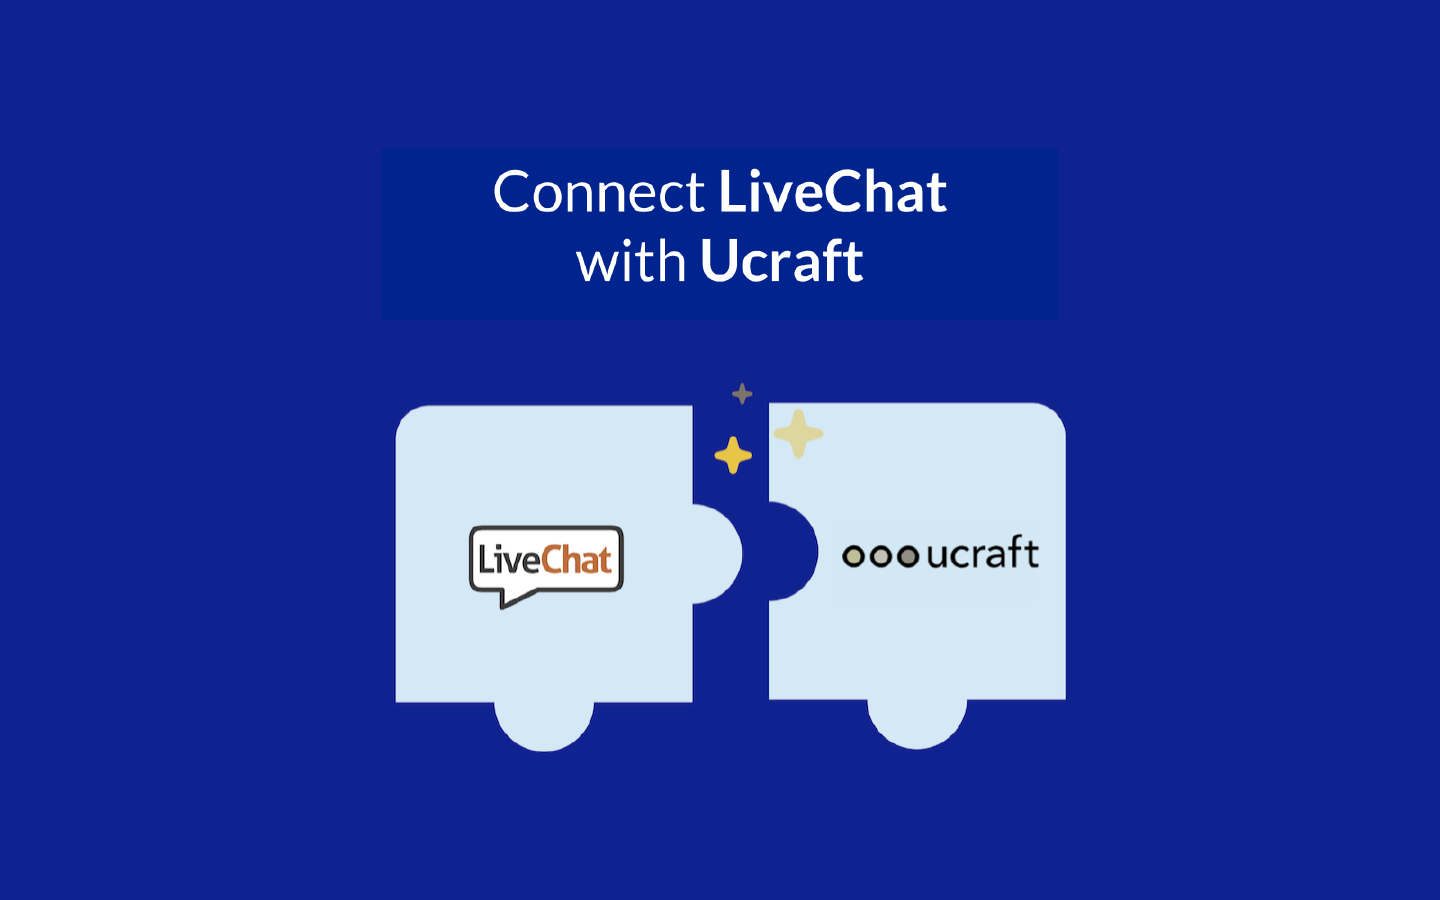 LiveChat and Ucraft